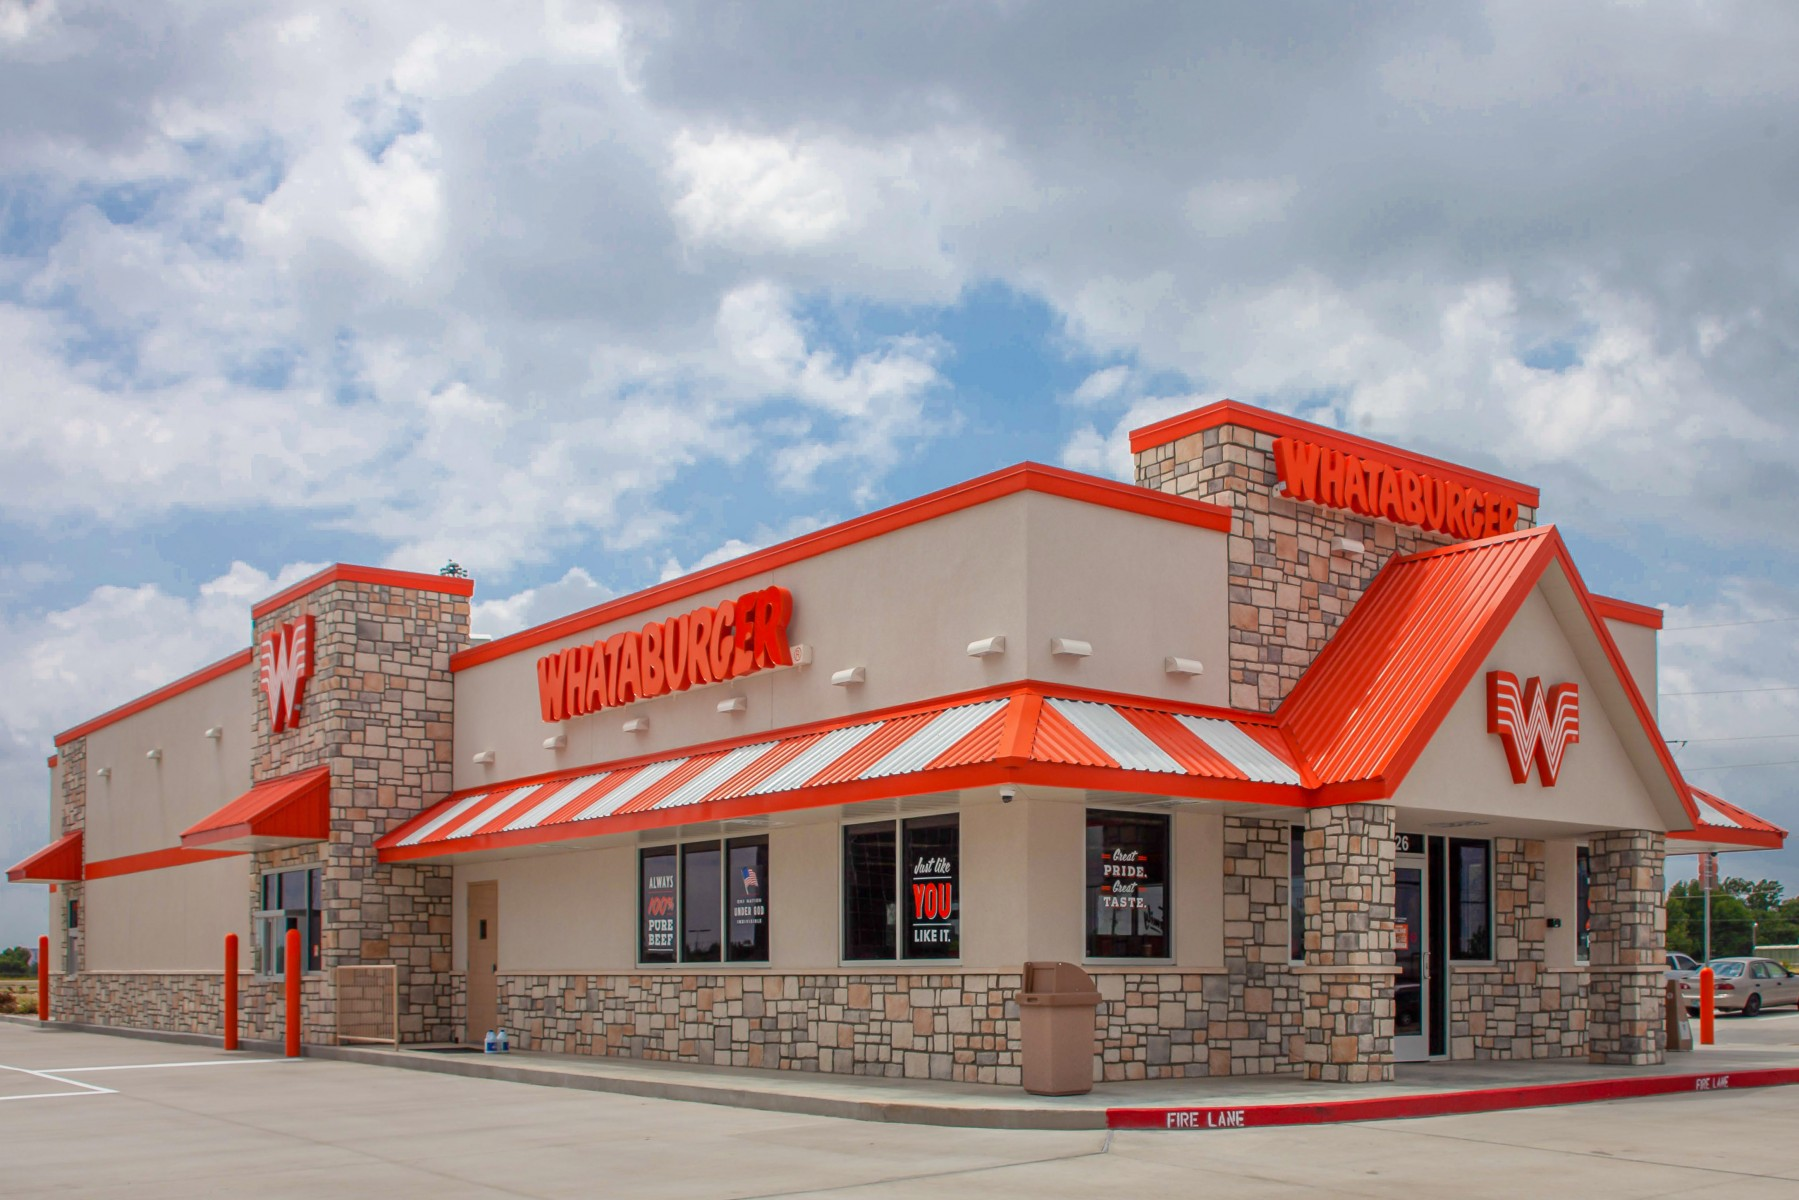 Whataburger Returns Better than Ever after Devastating Storm